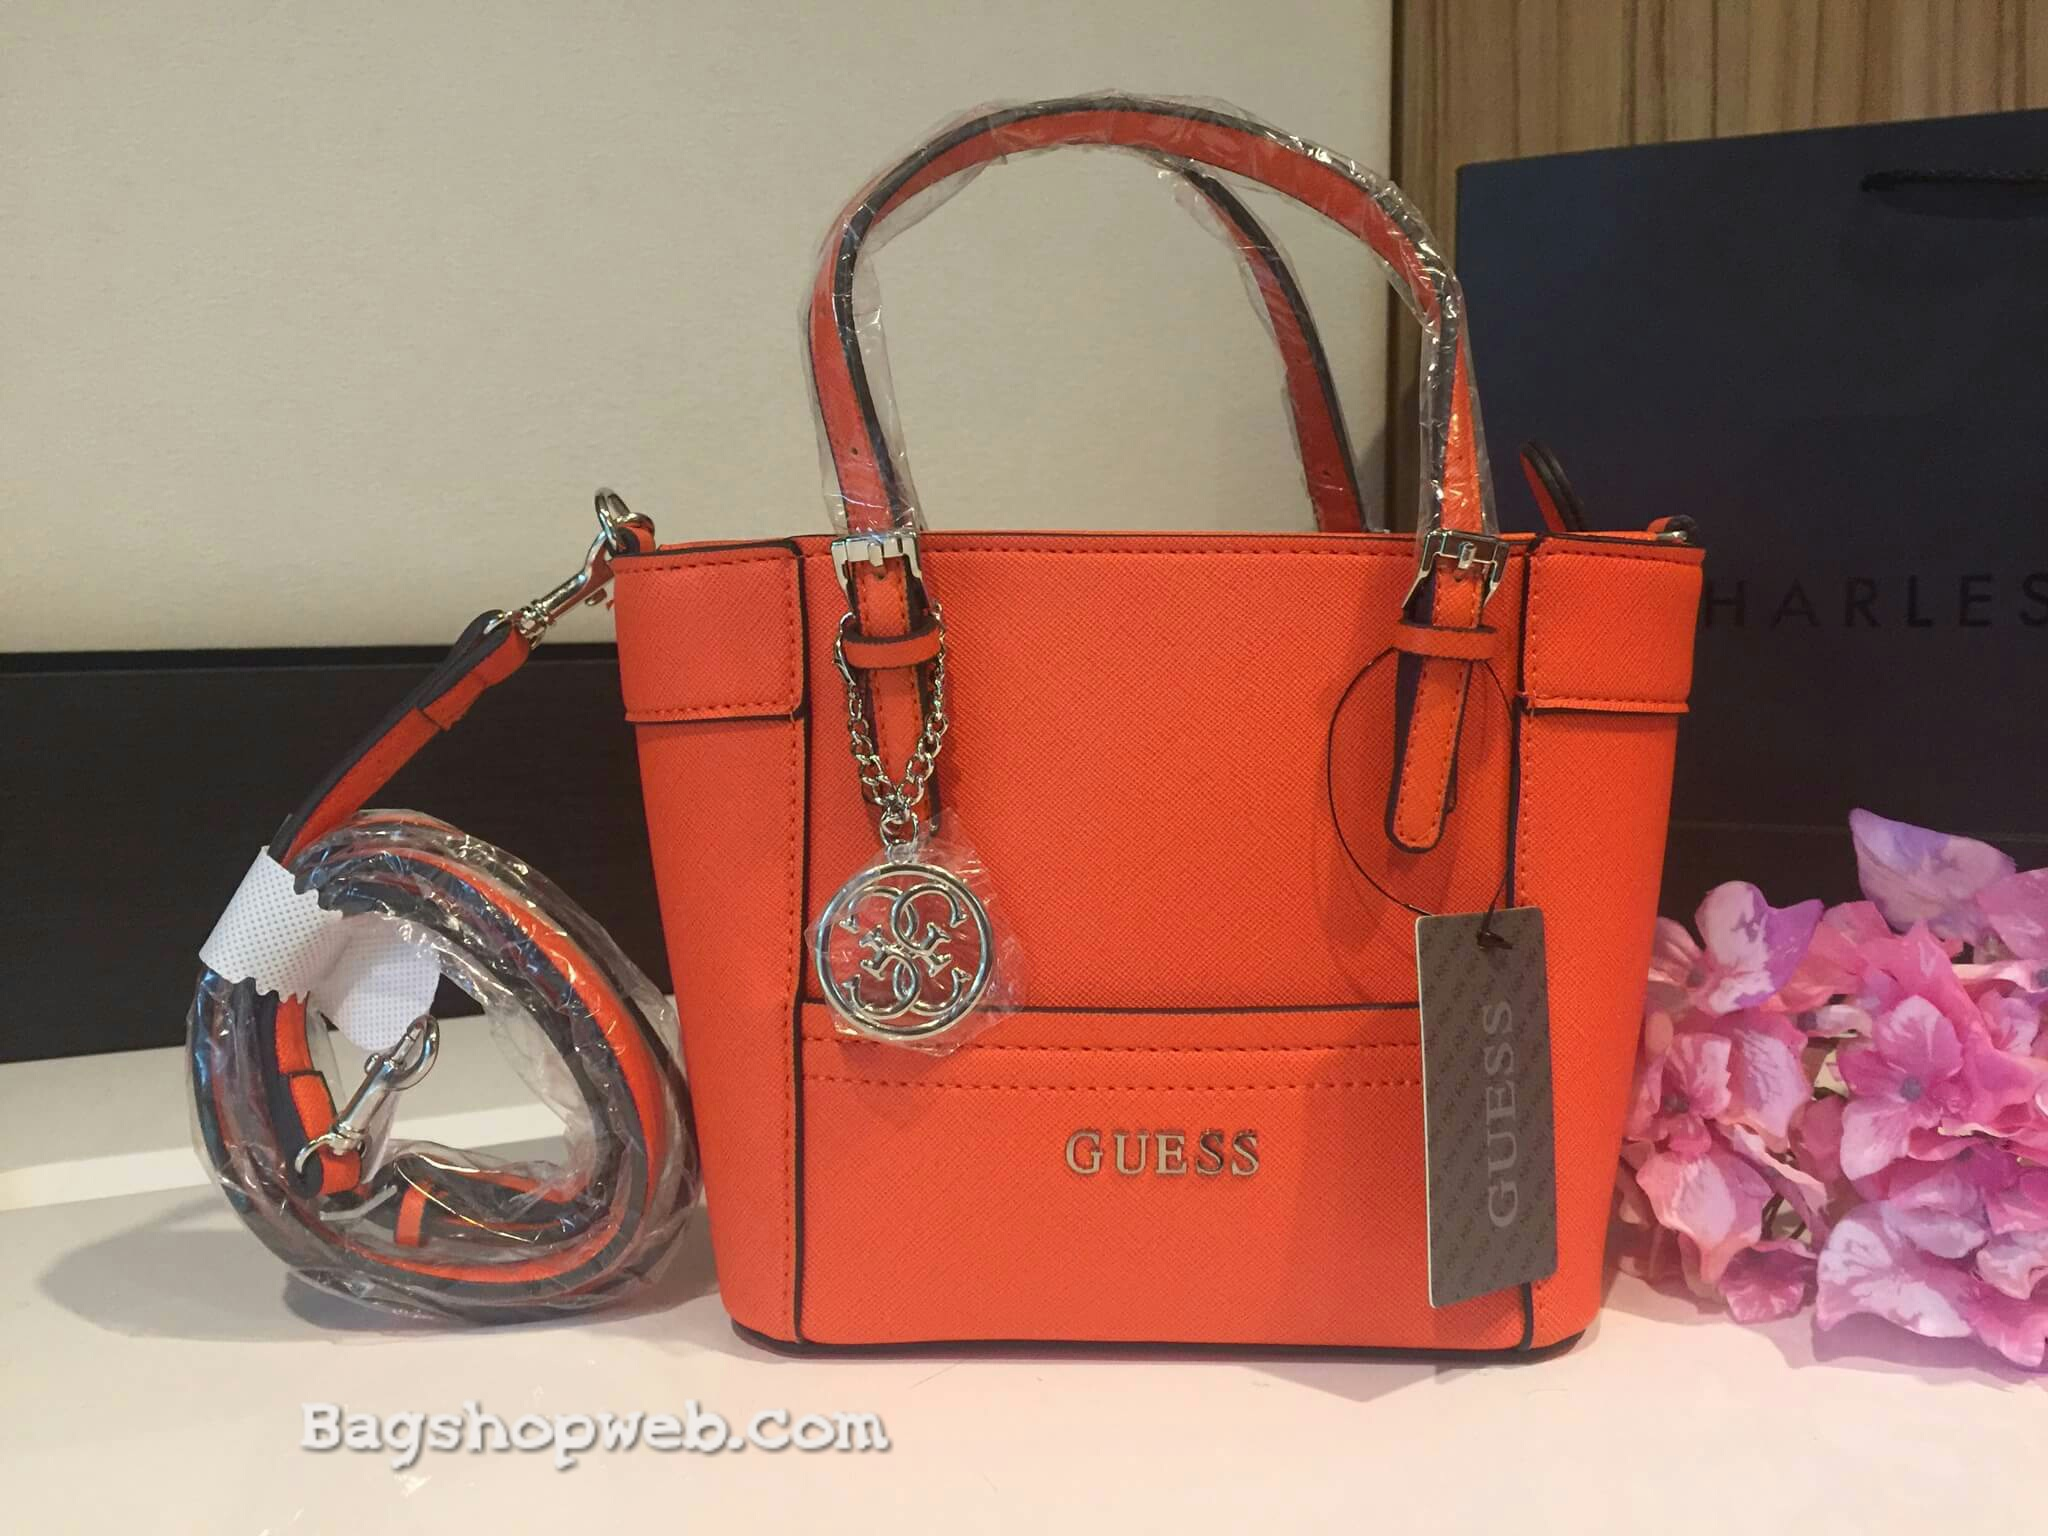 กระเป๋า GUESS SAFFIANO MINI CROSS BODY BAG